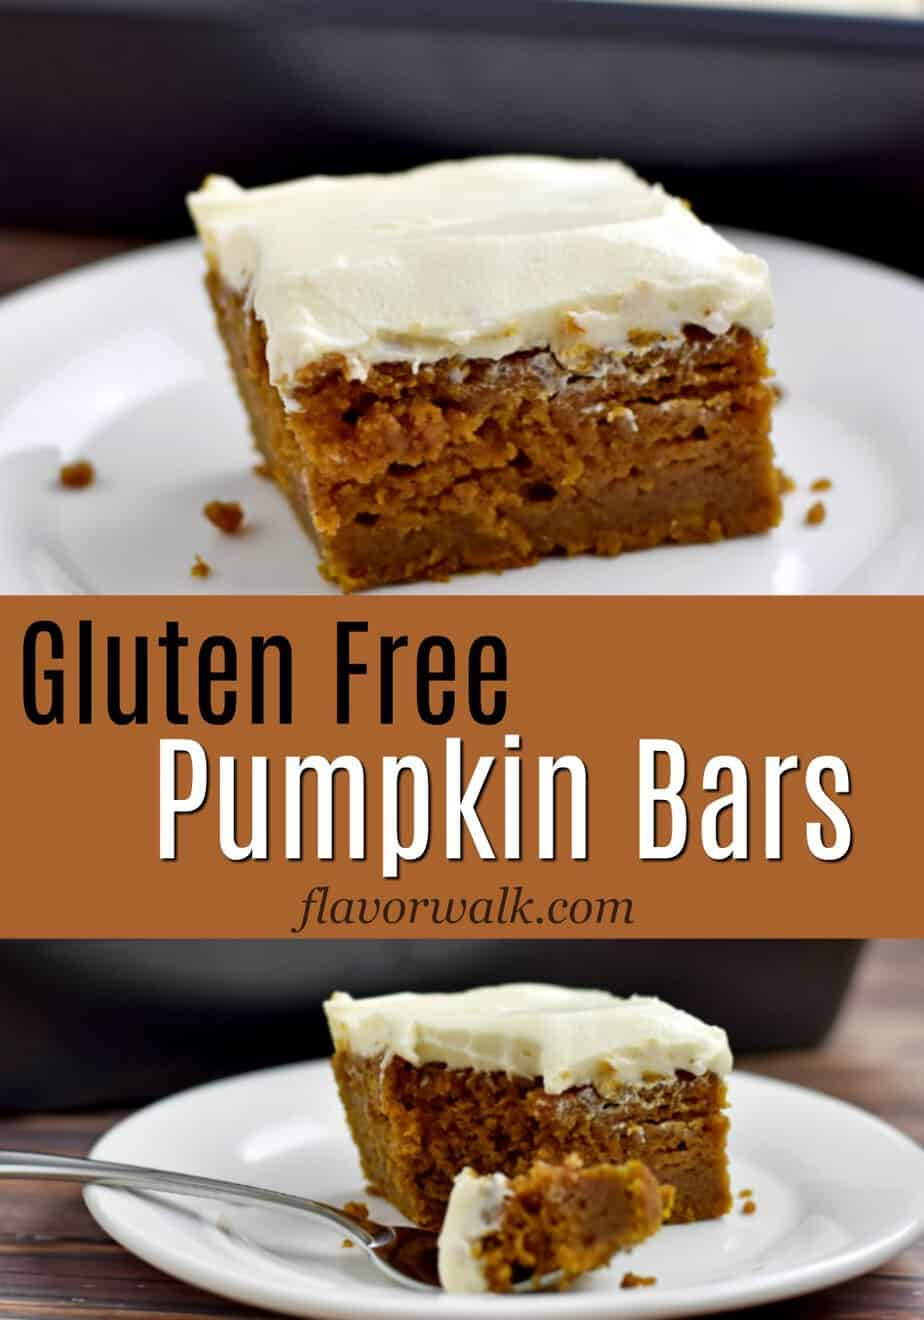 Serving of gluten free pumpkin bars above text and another serving below text